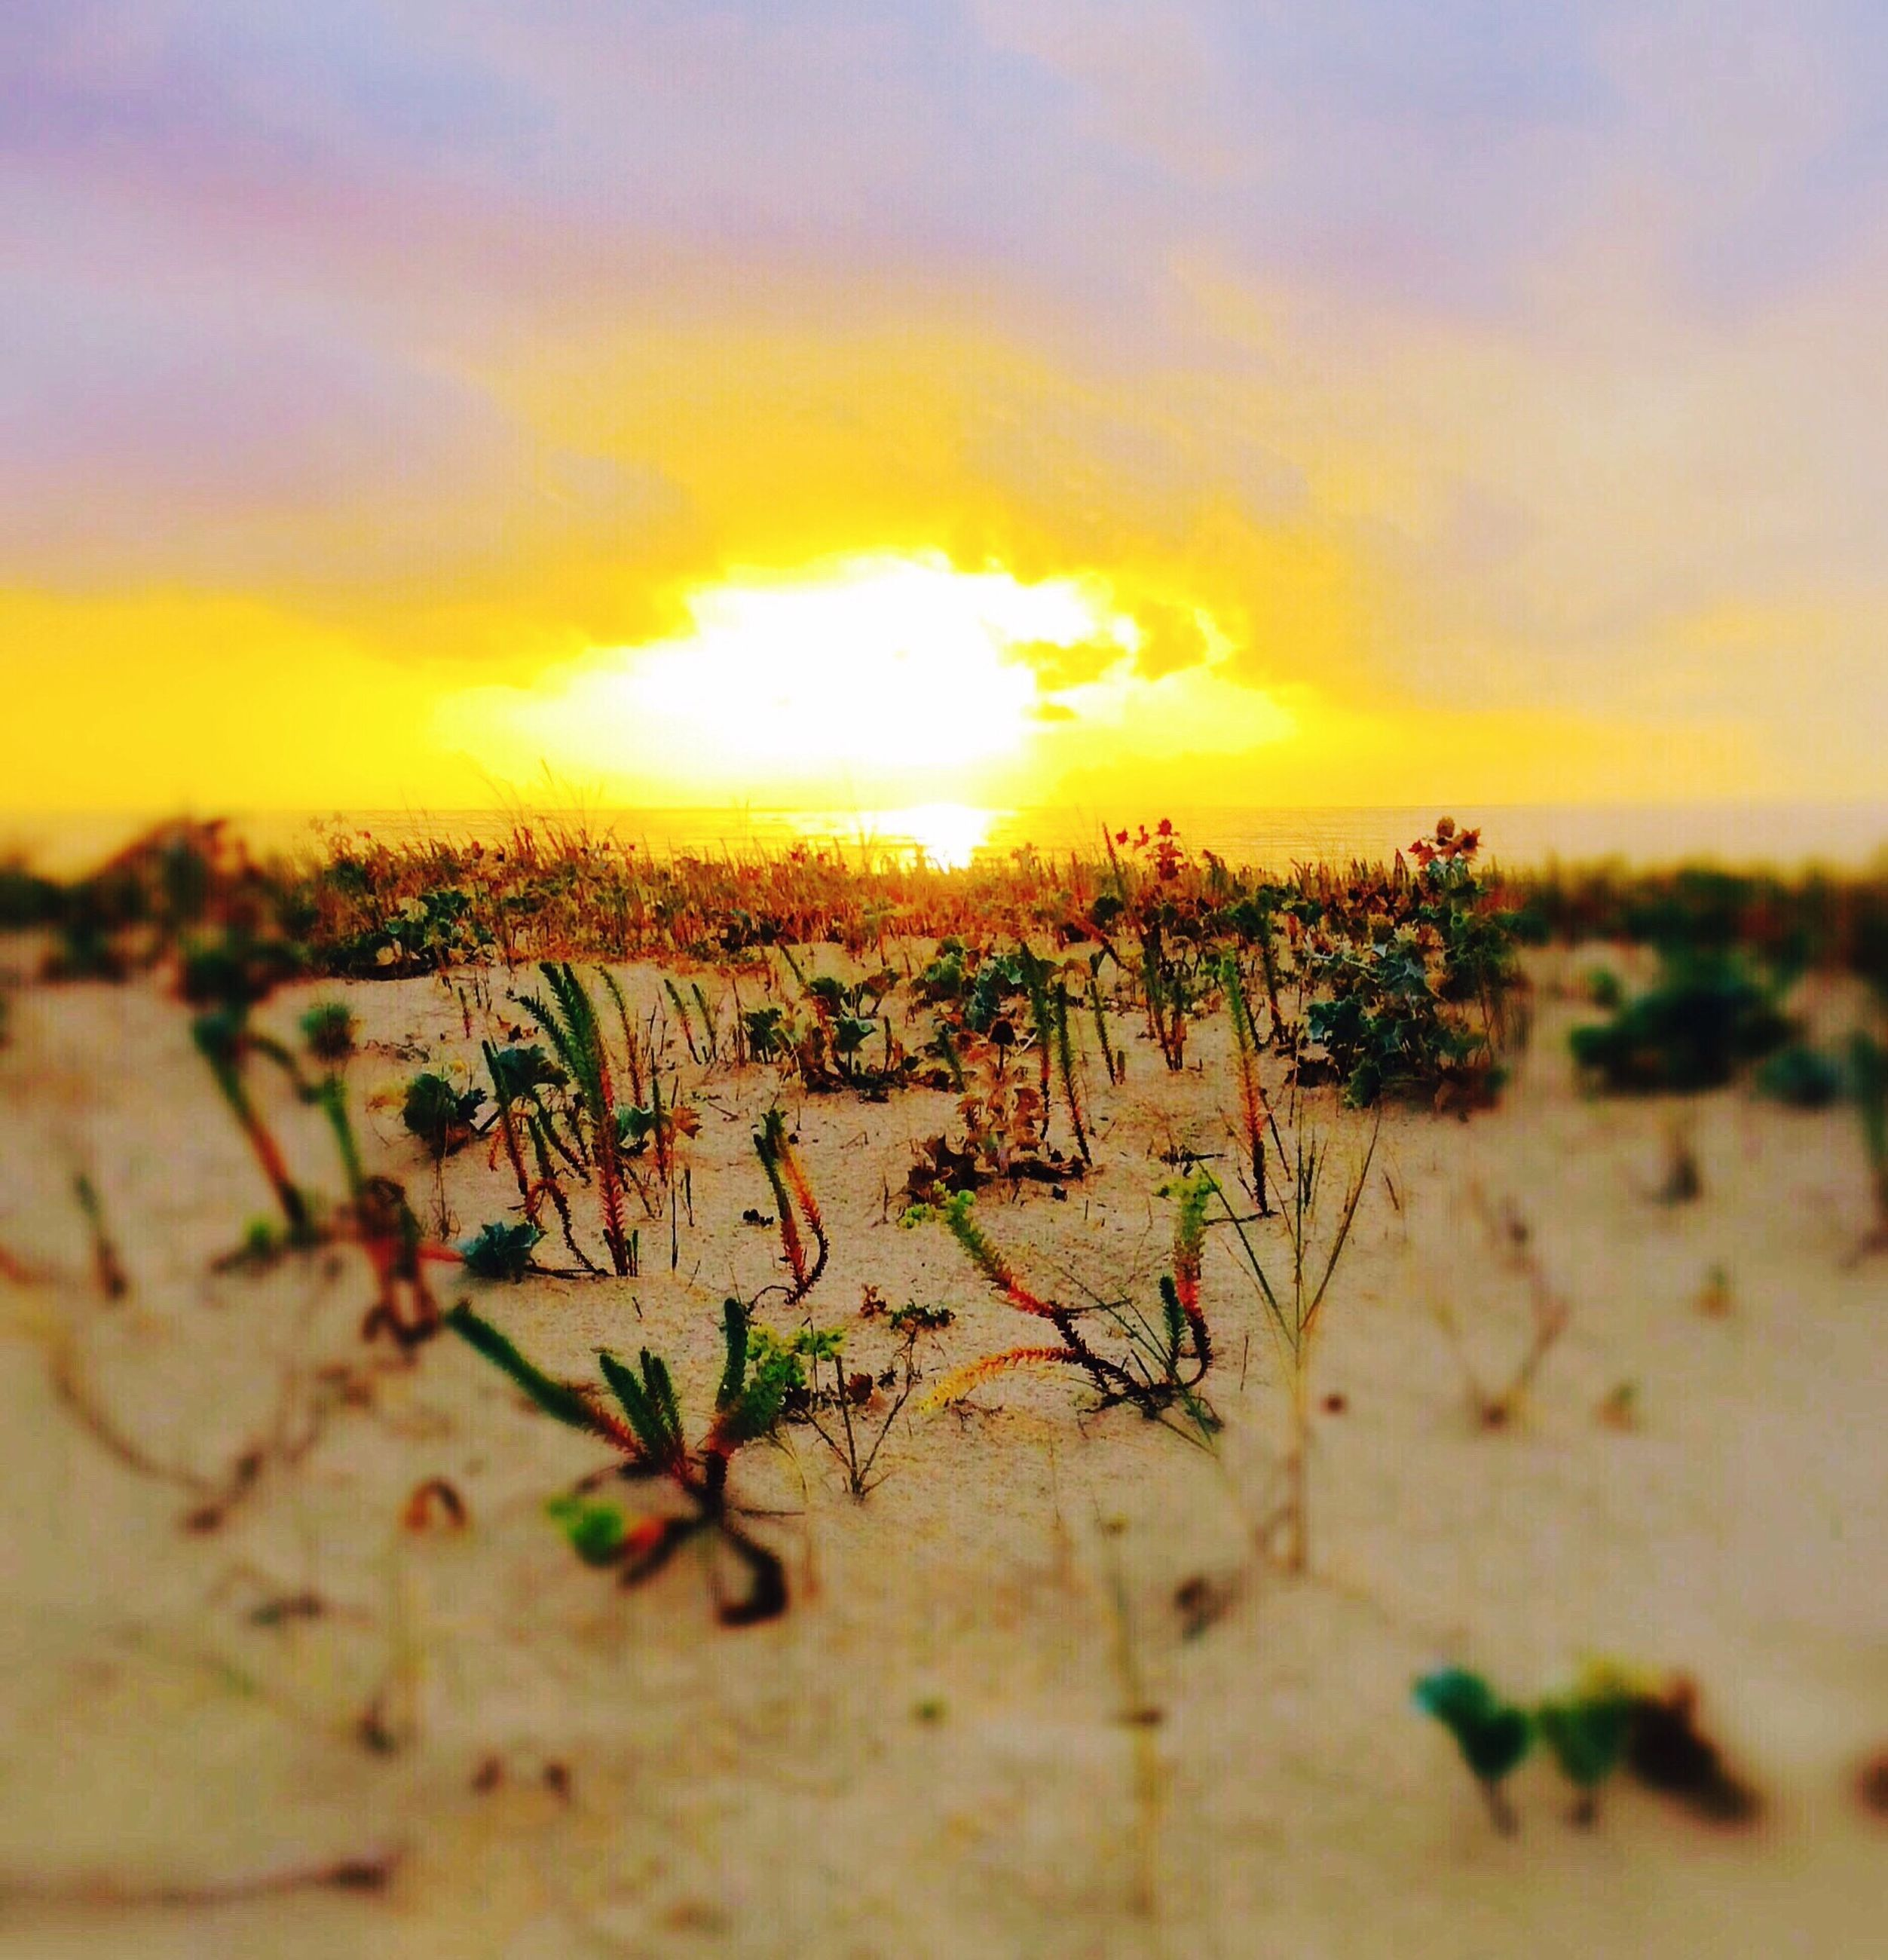 sunset, sky, tranquility, tranquil scene, nature, beauty in nature, orange color, scenics, landscape, plant, growth, cloud - sky, selective focus, field, focus on foreground, sand, outdoors, beach, idyllic, no people